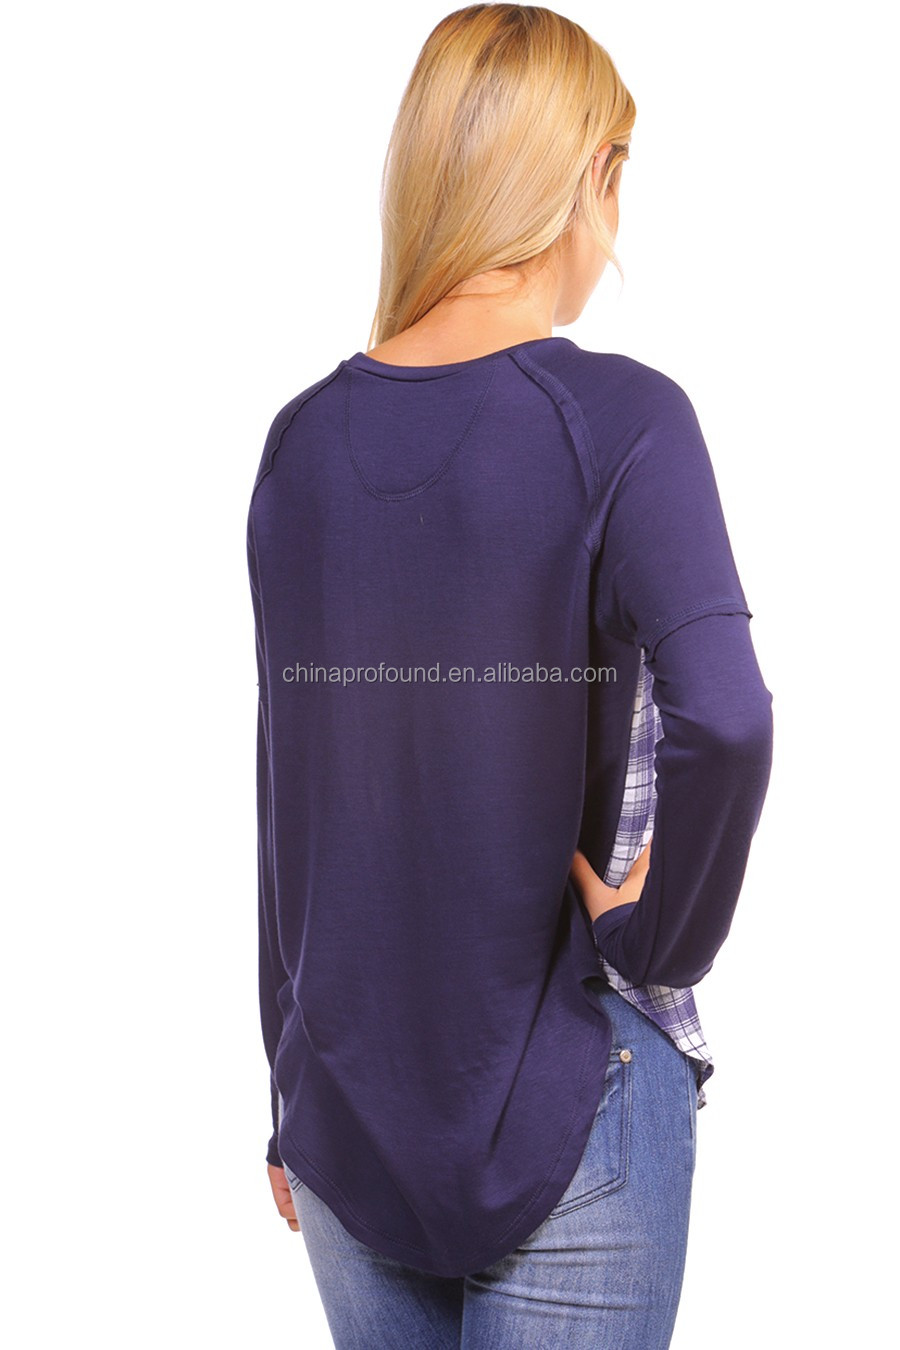 Custom women's long sleeve body checked raglan t shirt